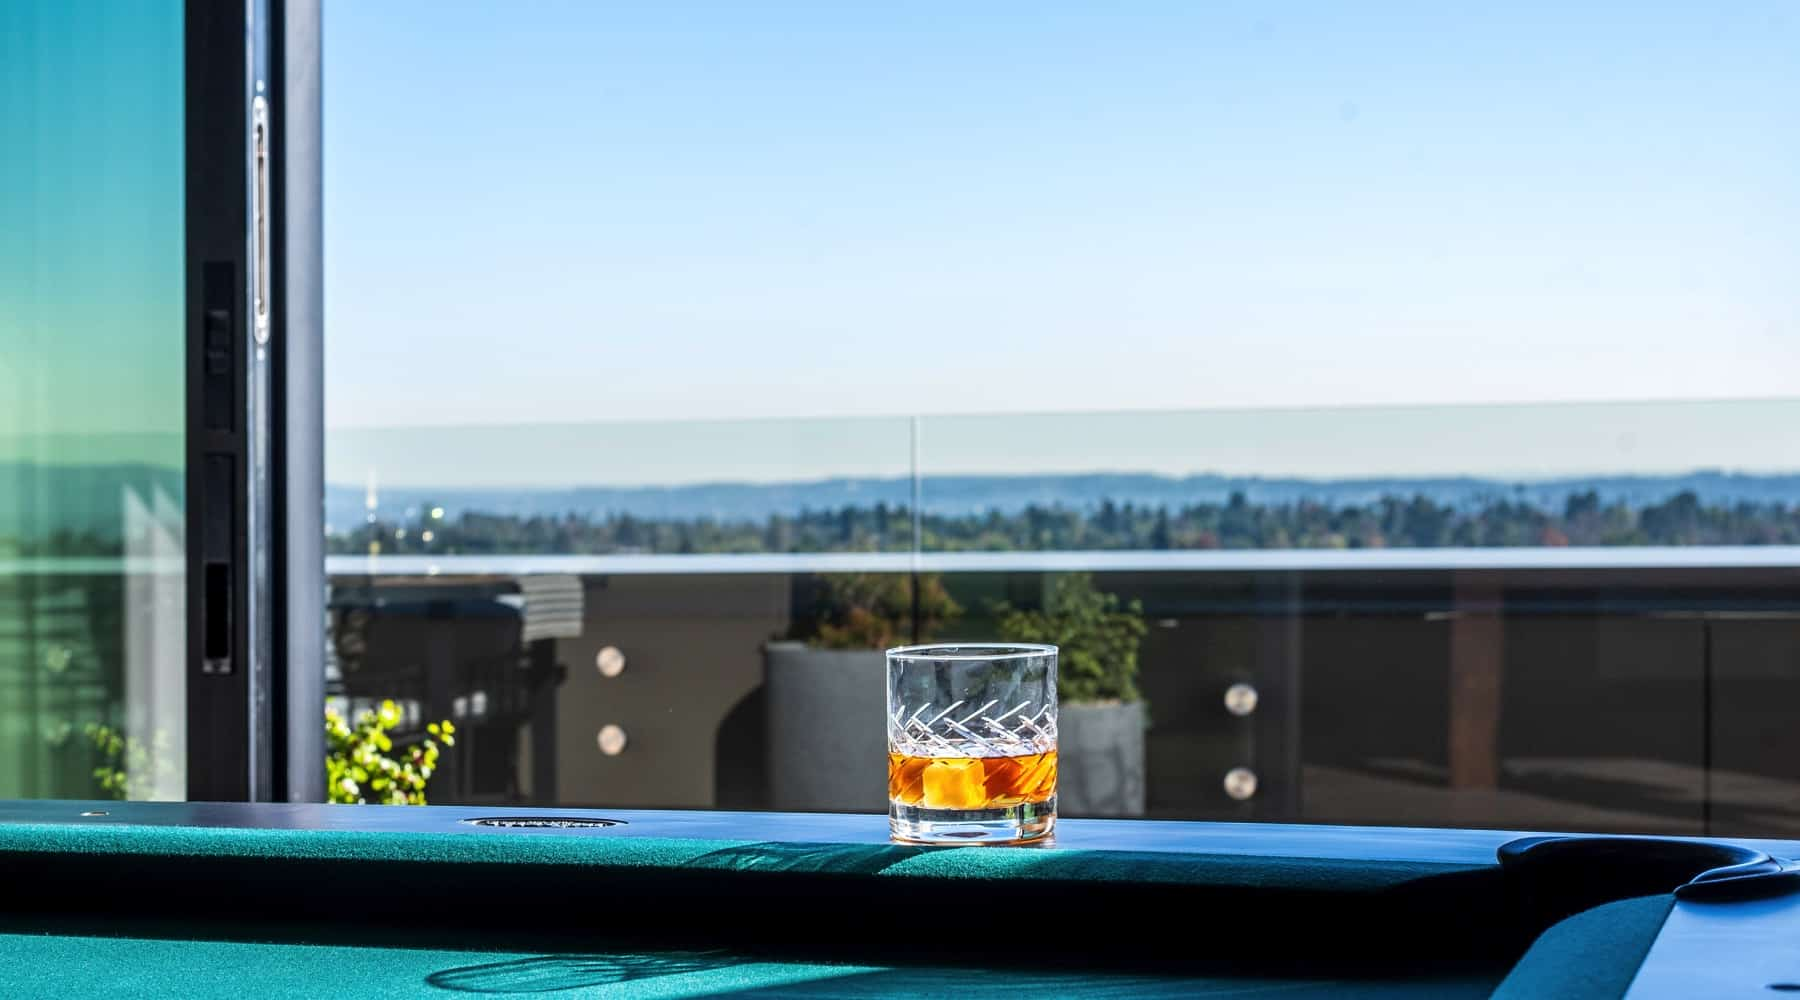 Penthouse_6_Drink_PoolTable_View